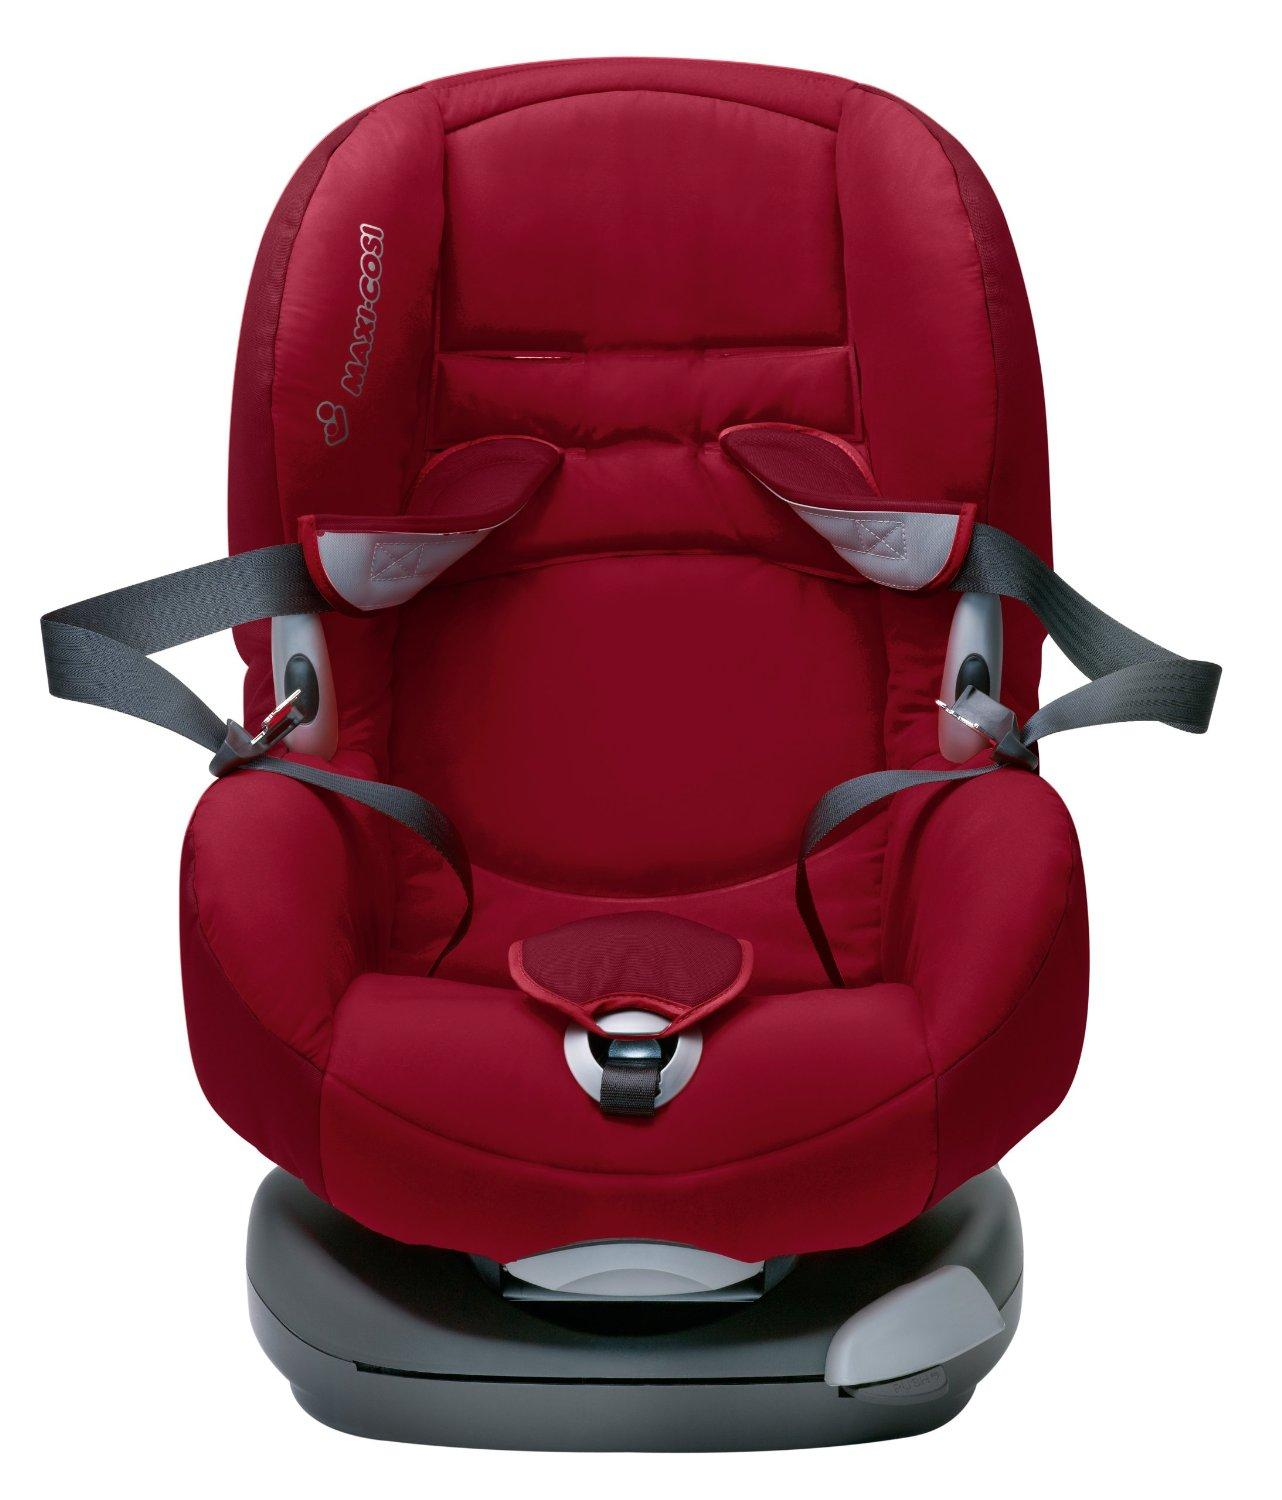 maxi cosi priori xp group 1 car seat 2015 range solid. Black Bedroom Furniture Sets. Home Design Ideas